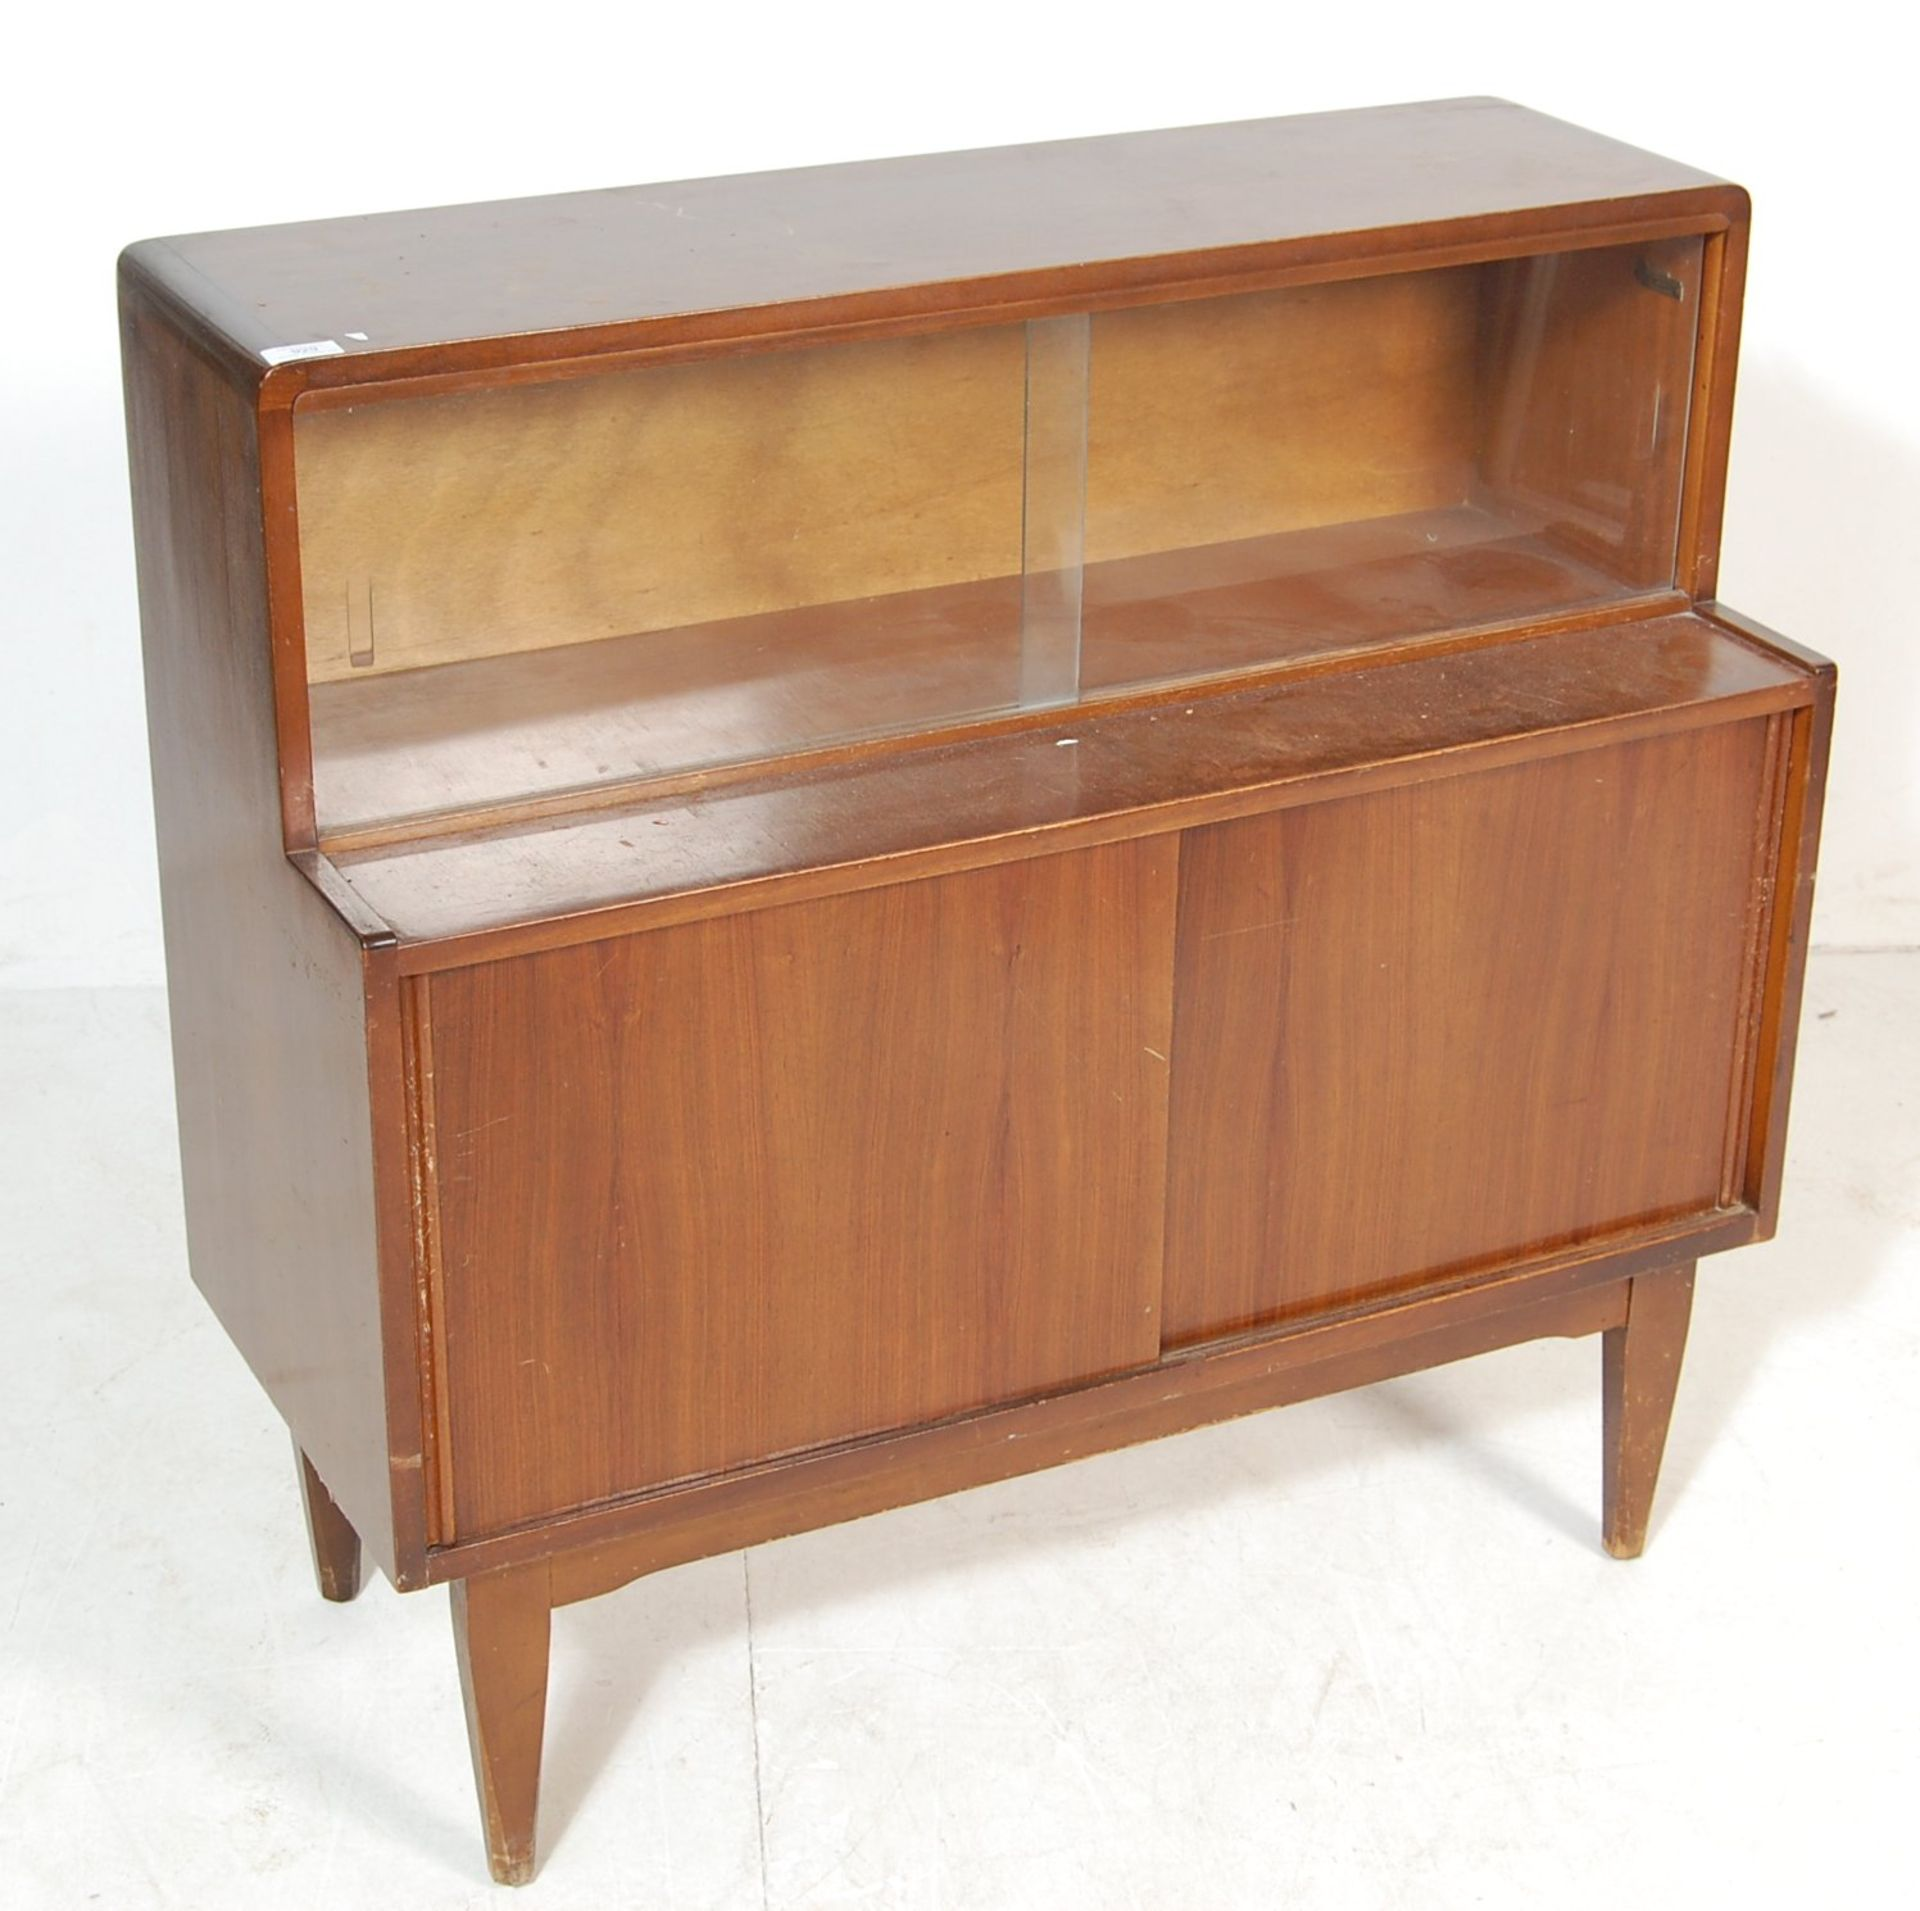 RETRO VINTAGE MID CENTURY TEAK WOOD HIGHBOARD - Image 2 of 5